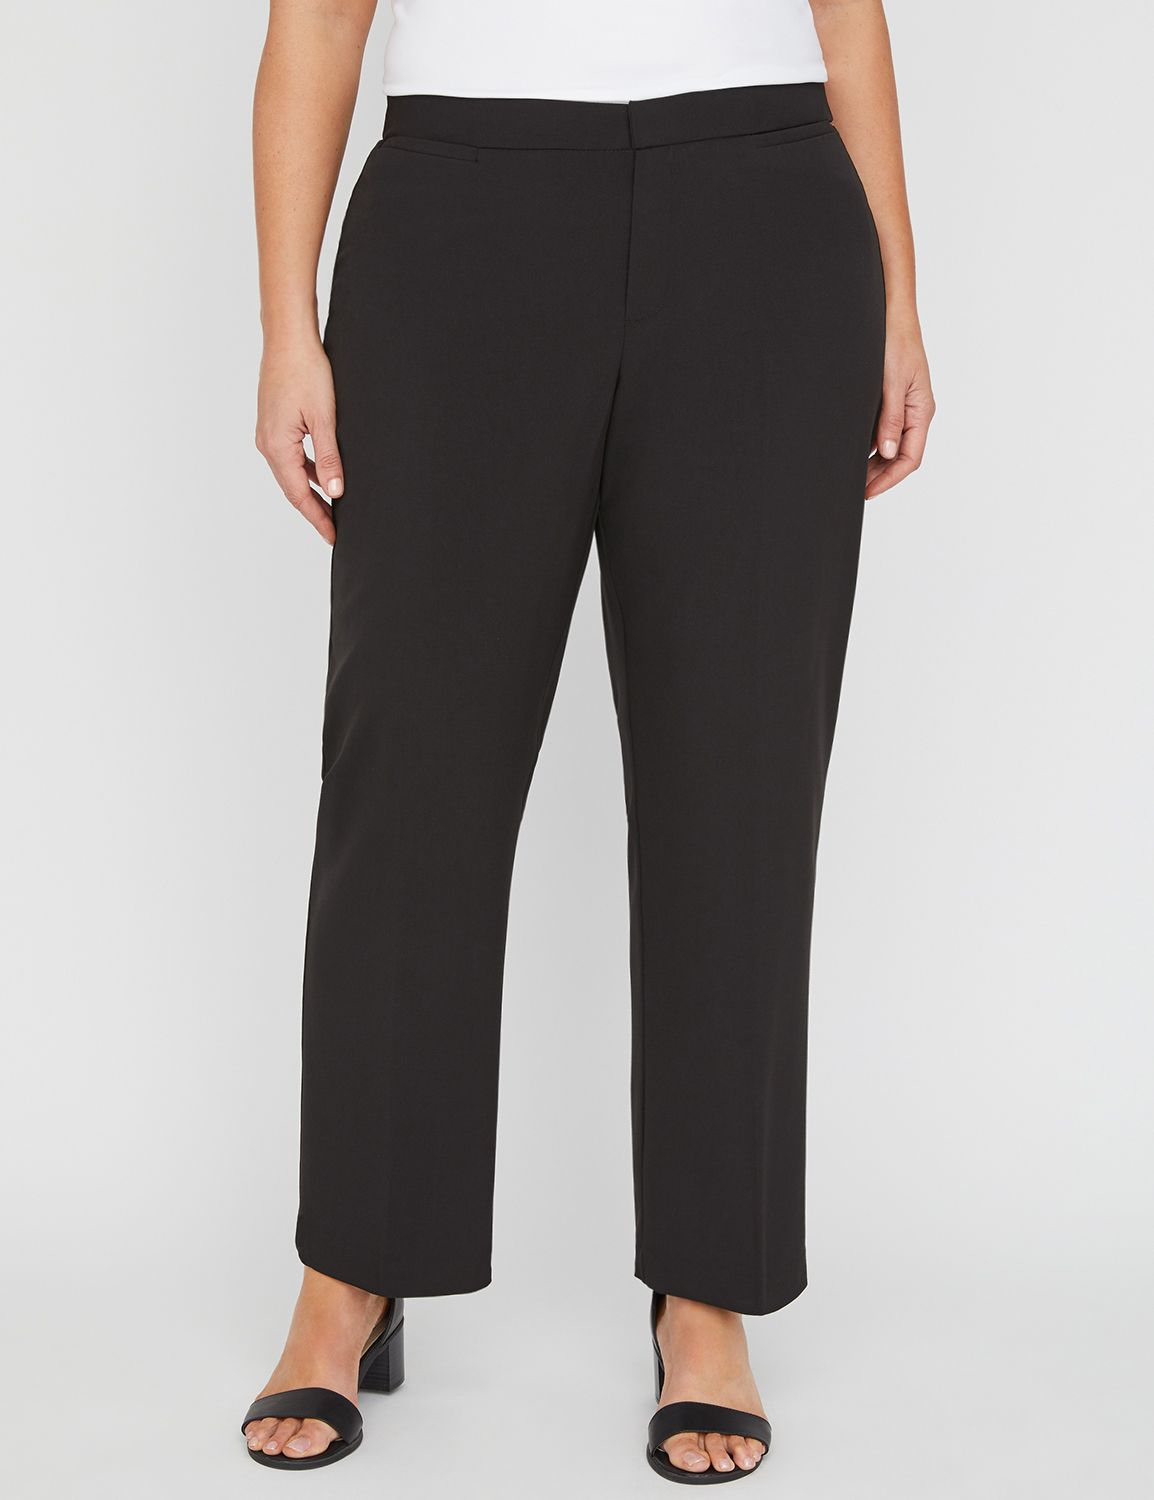 Right Fit Pant (Moderately Curvy) Right Fit Pant (Moderately Curvy) MP-300009905